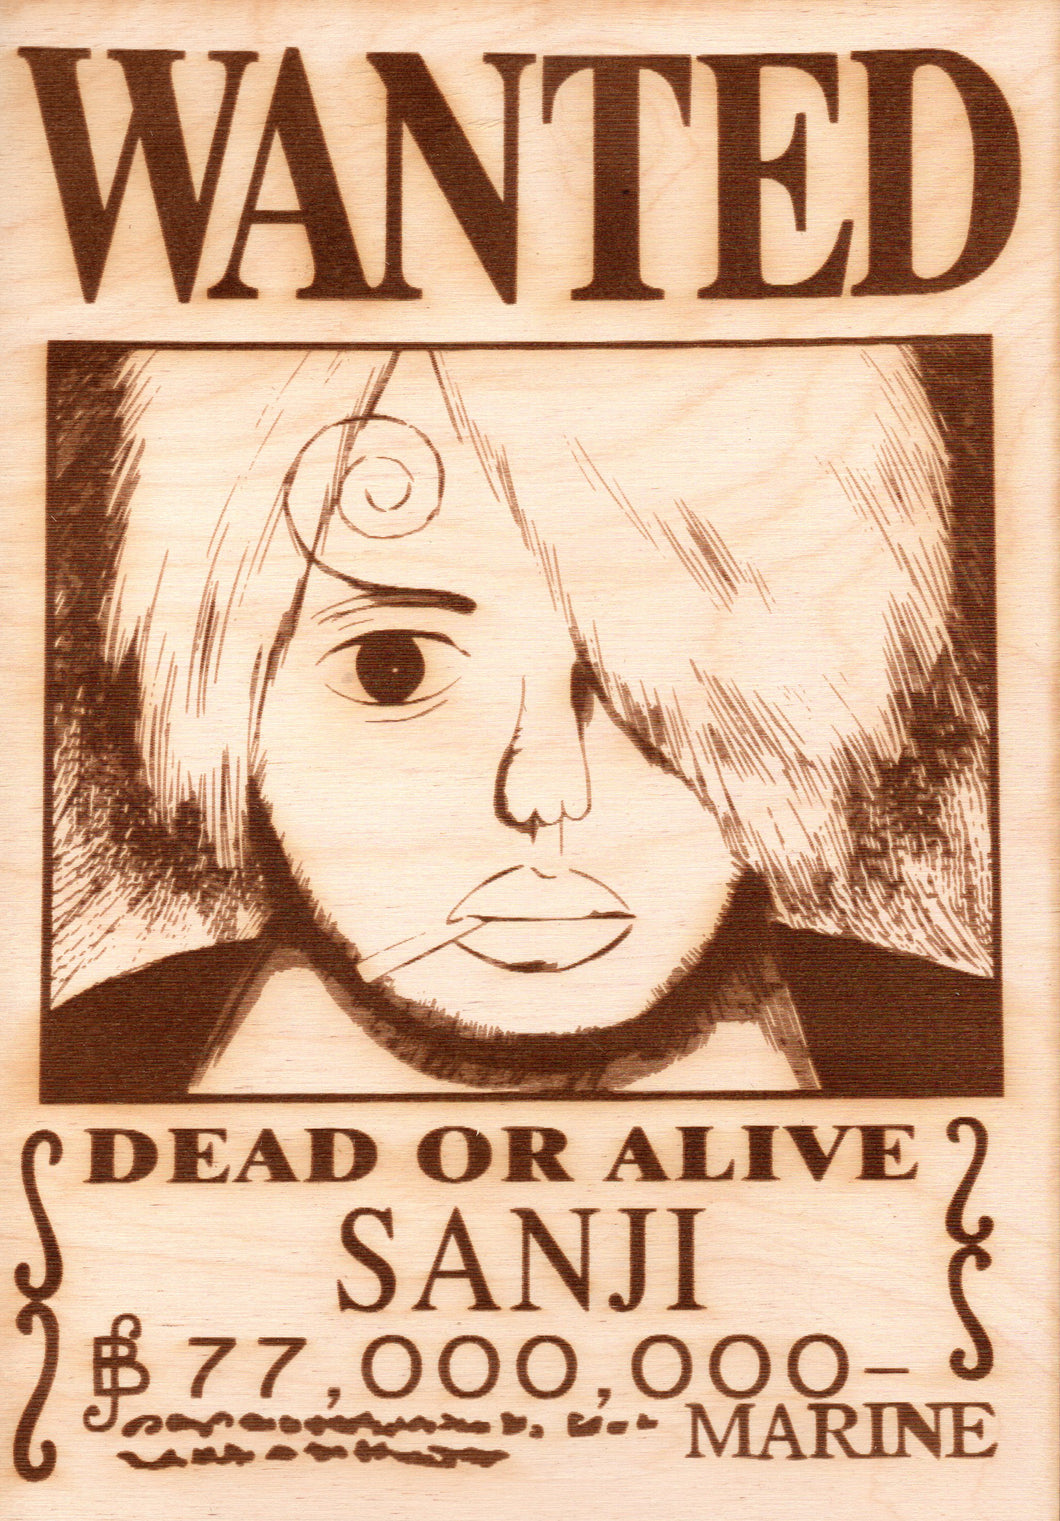 One Piece - Sanji (fake) Wanted Poster - TantrumCollectibles.com